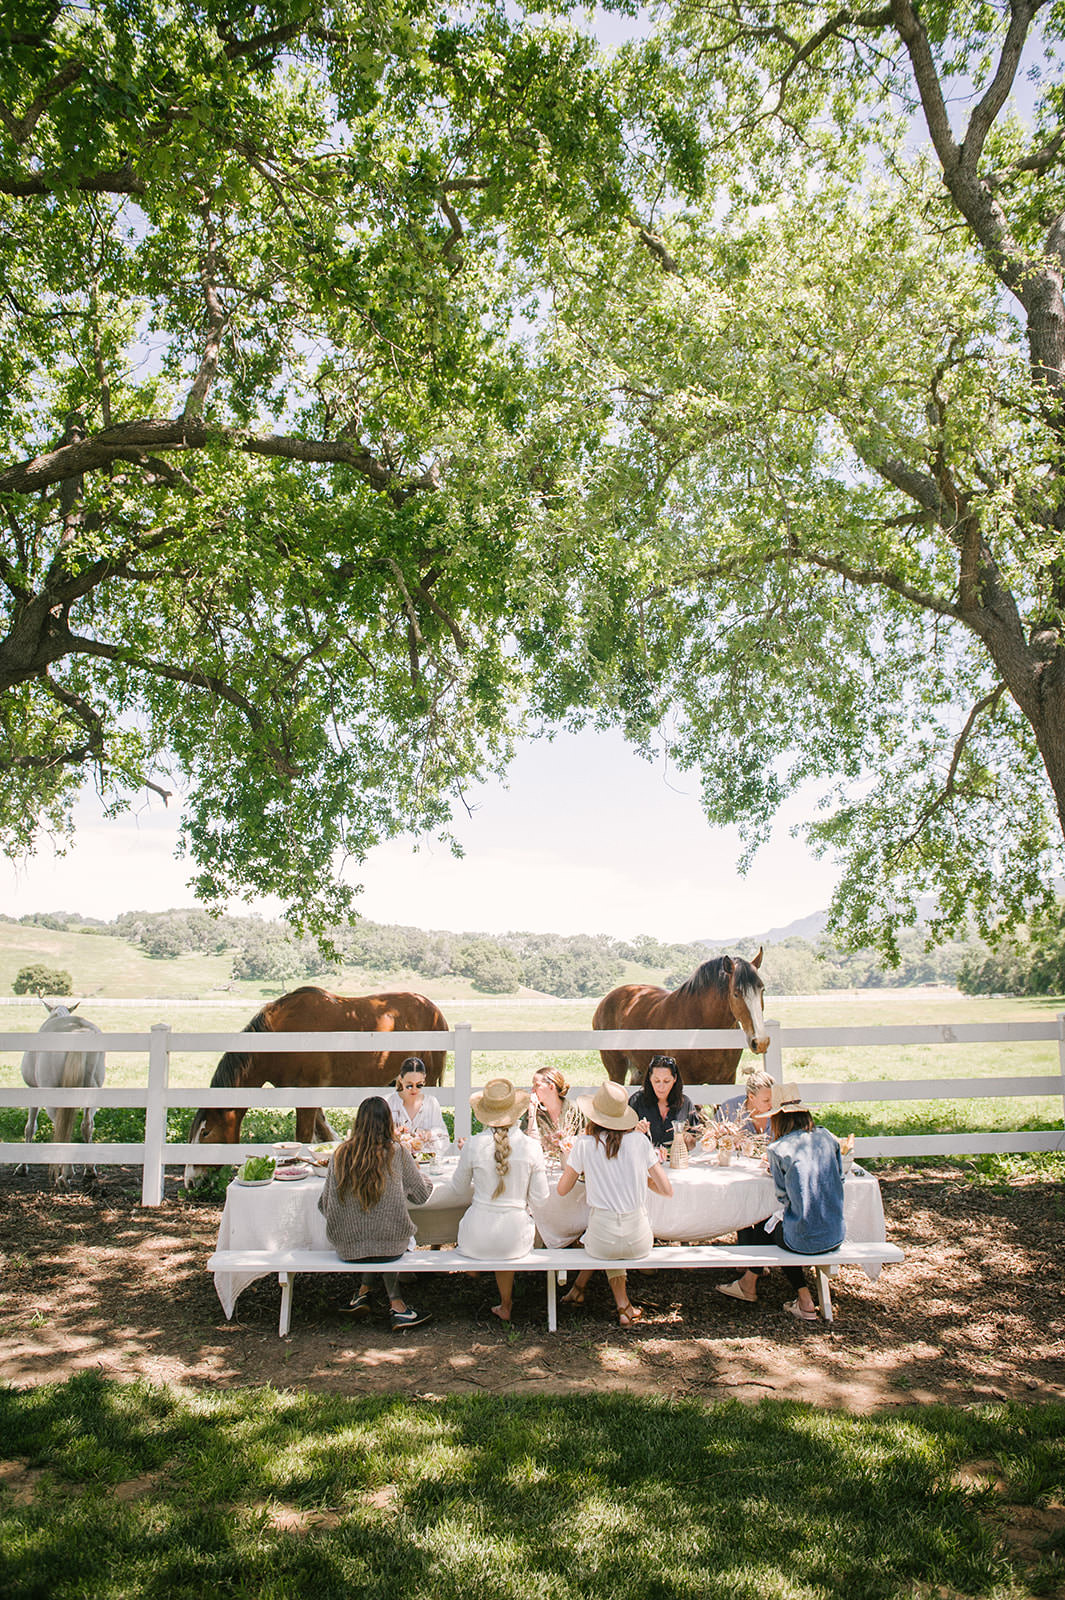 Outdoor dining at farmhouse with horses at Folded Hills for Jenni Kayne